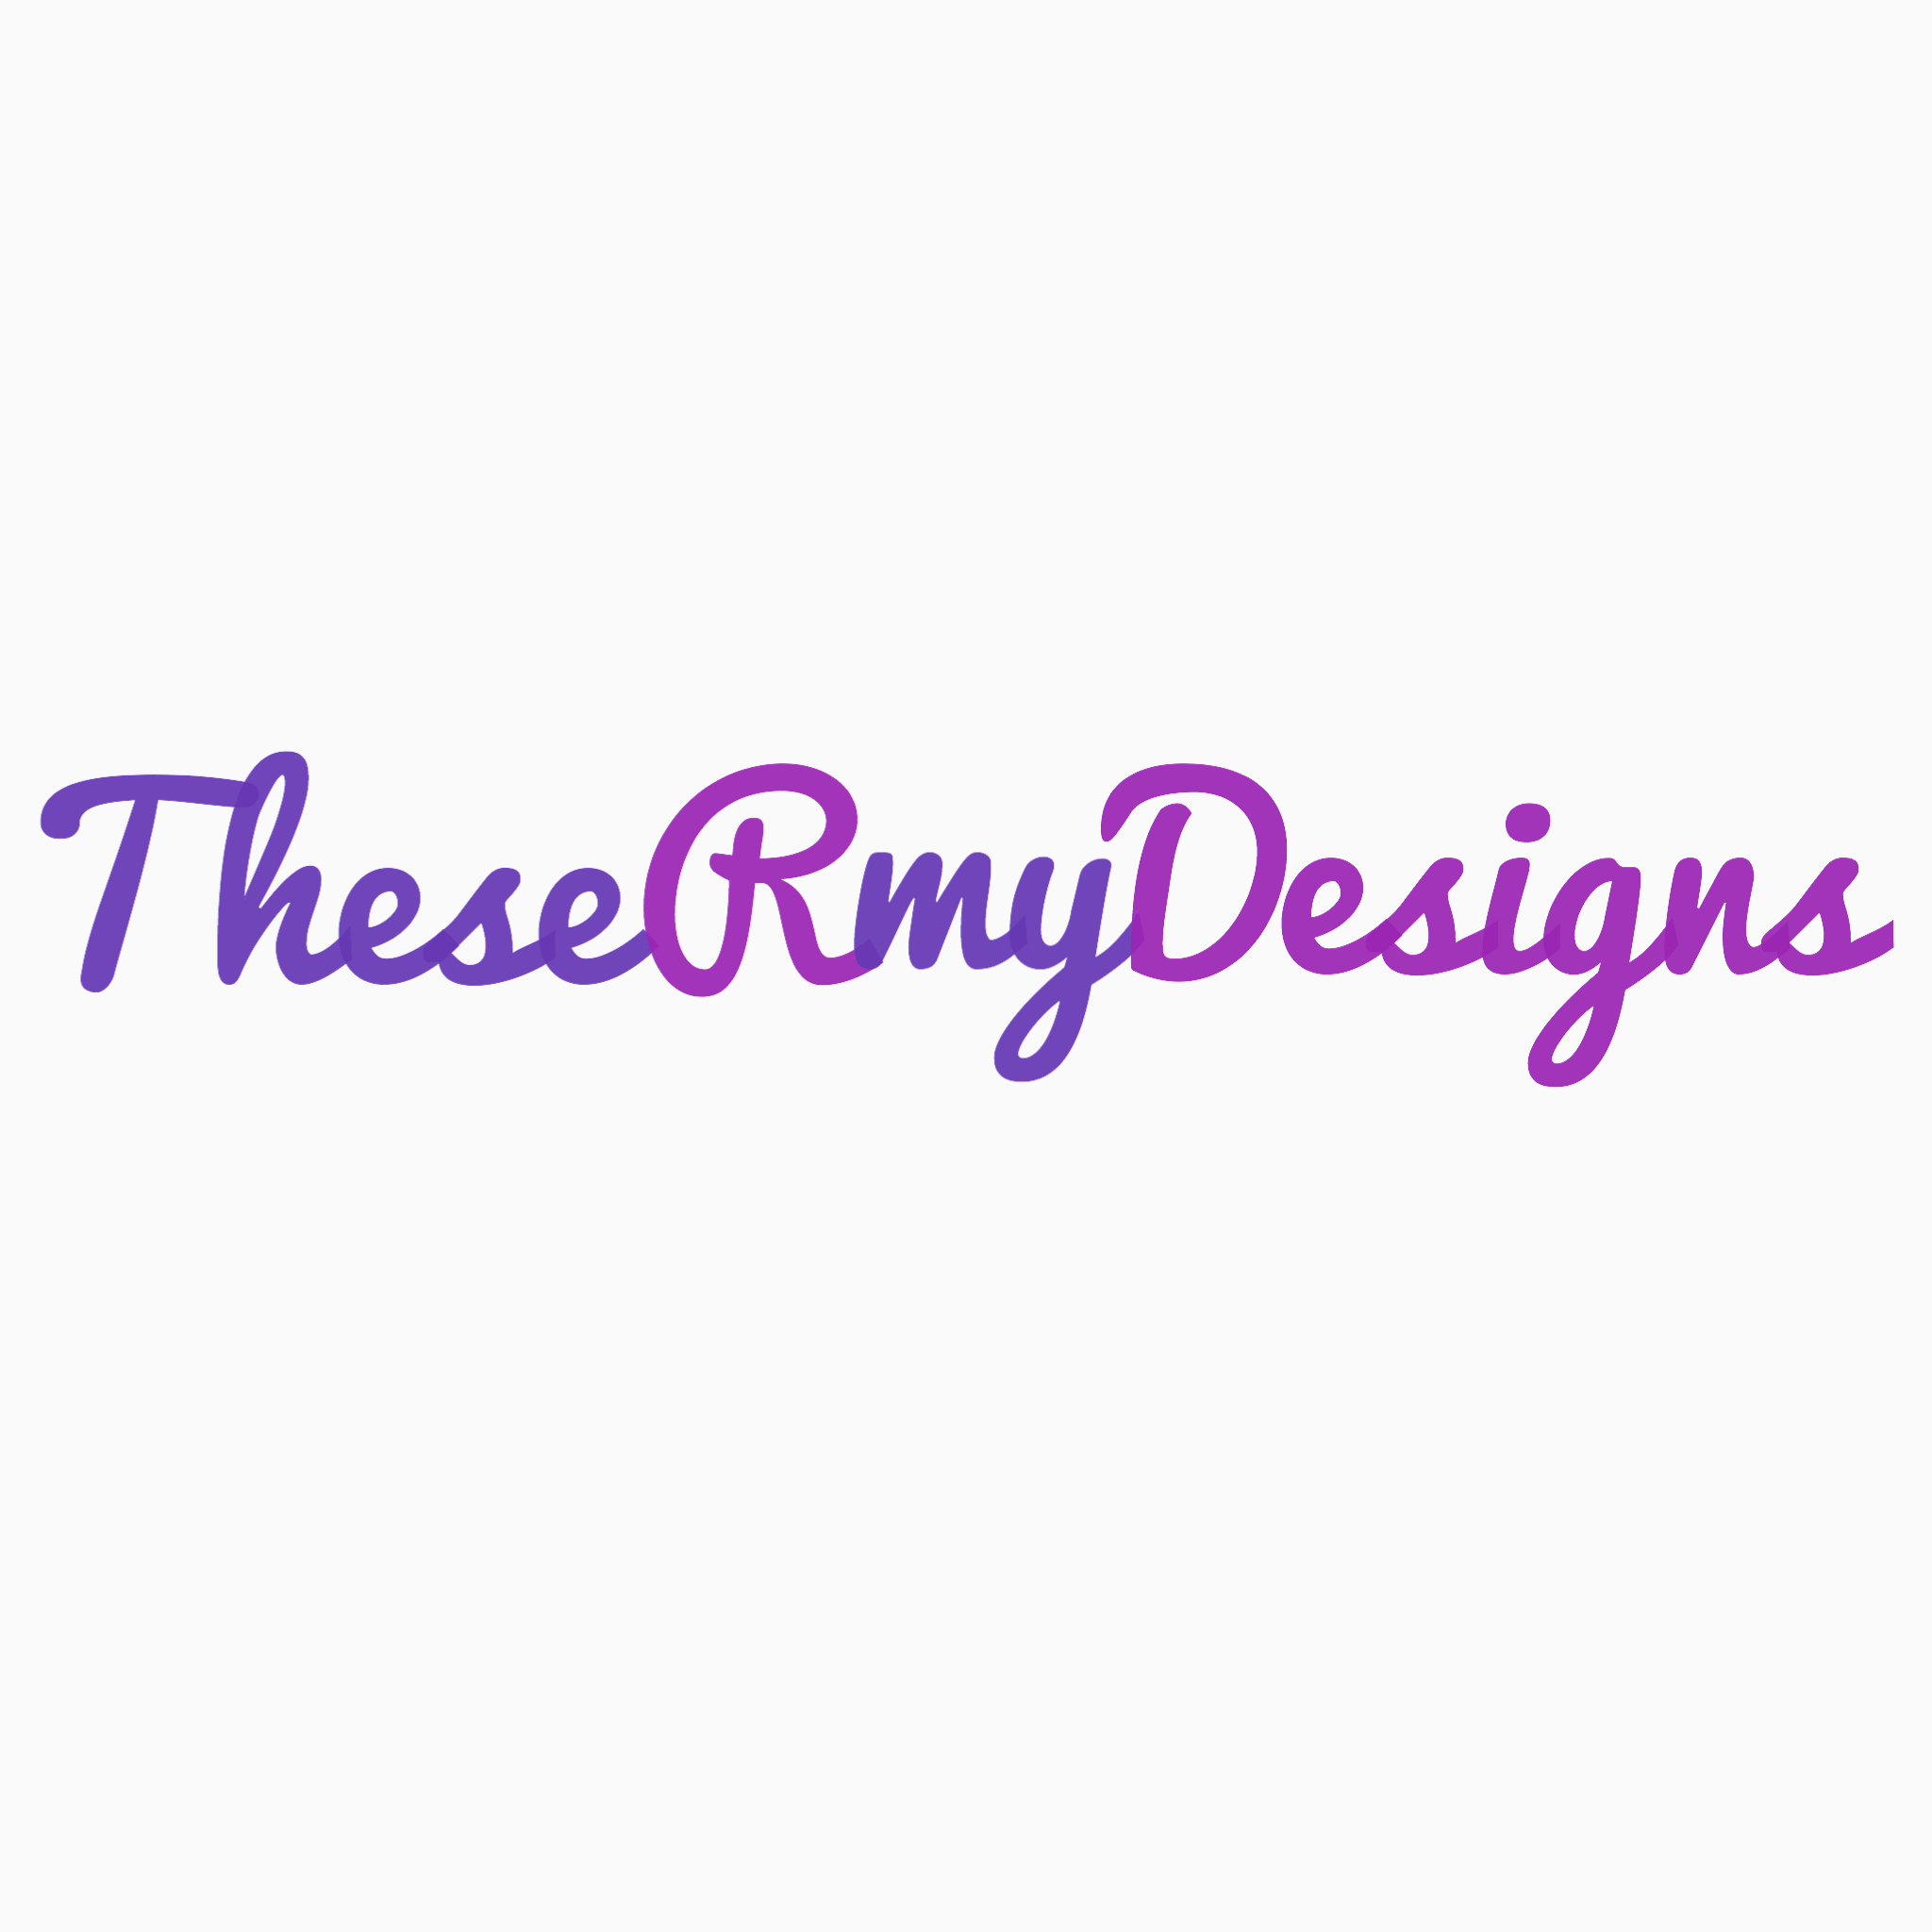 TheseRmydesigns Signature